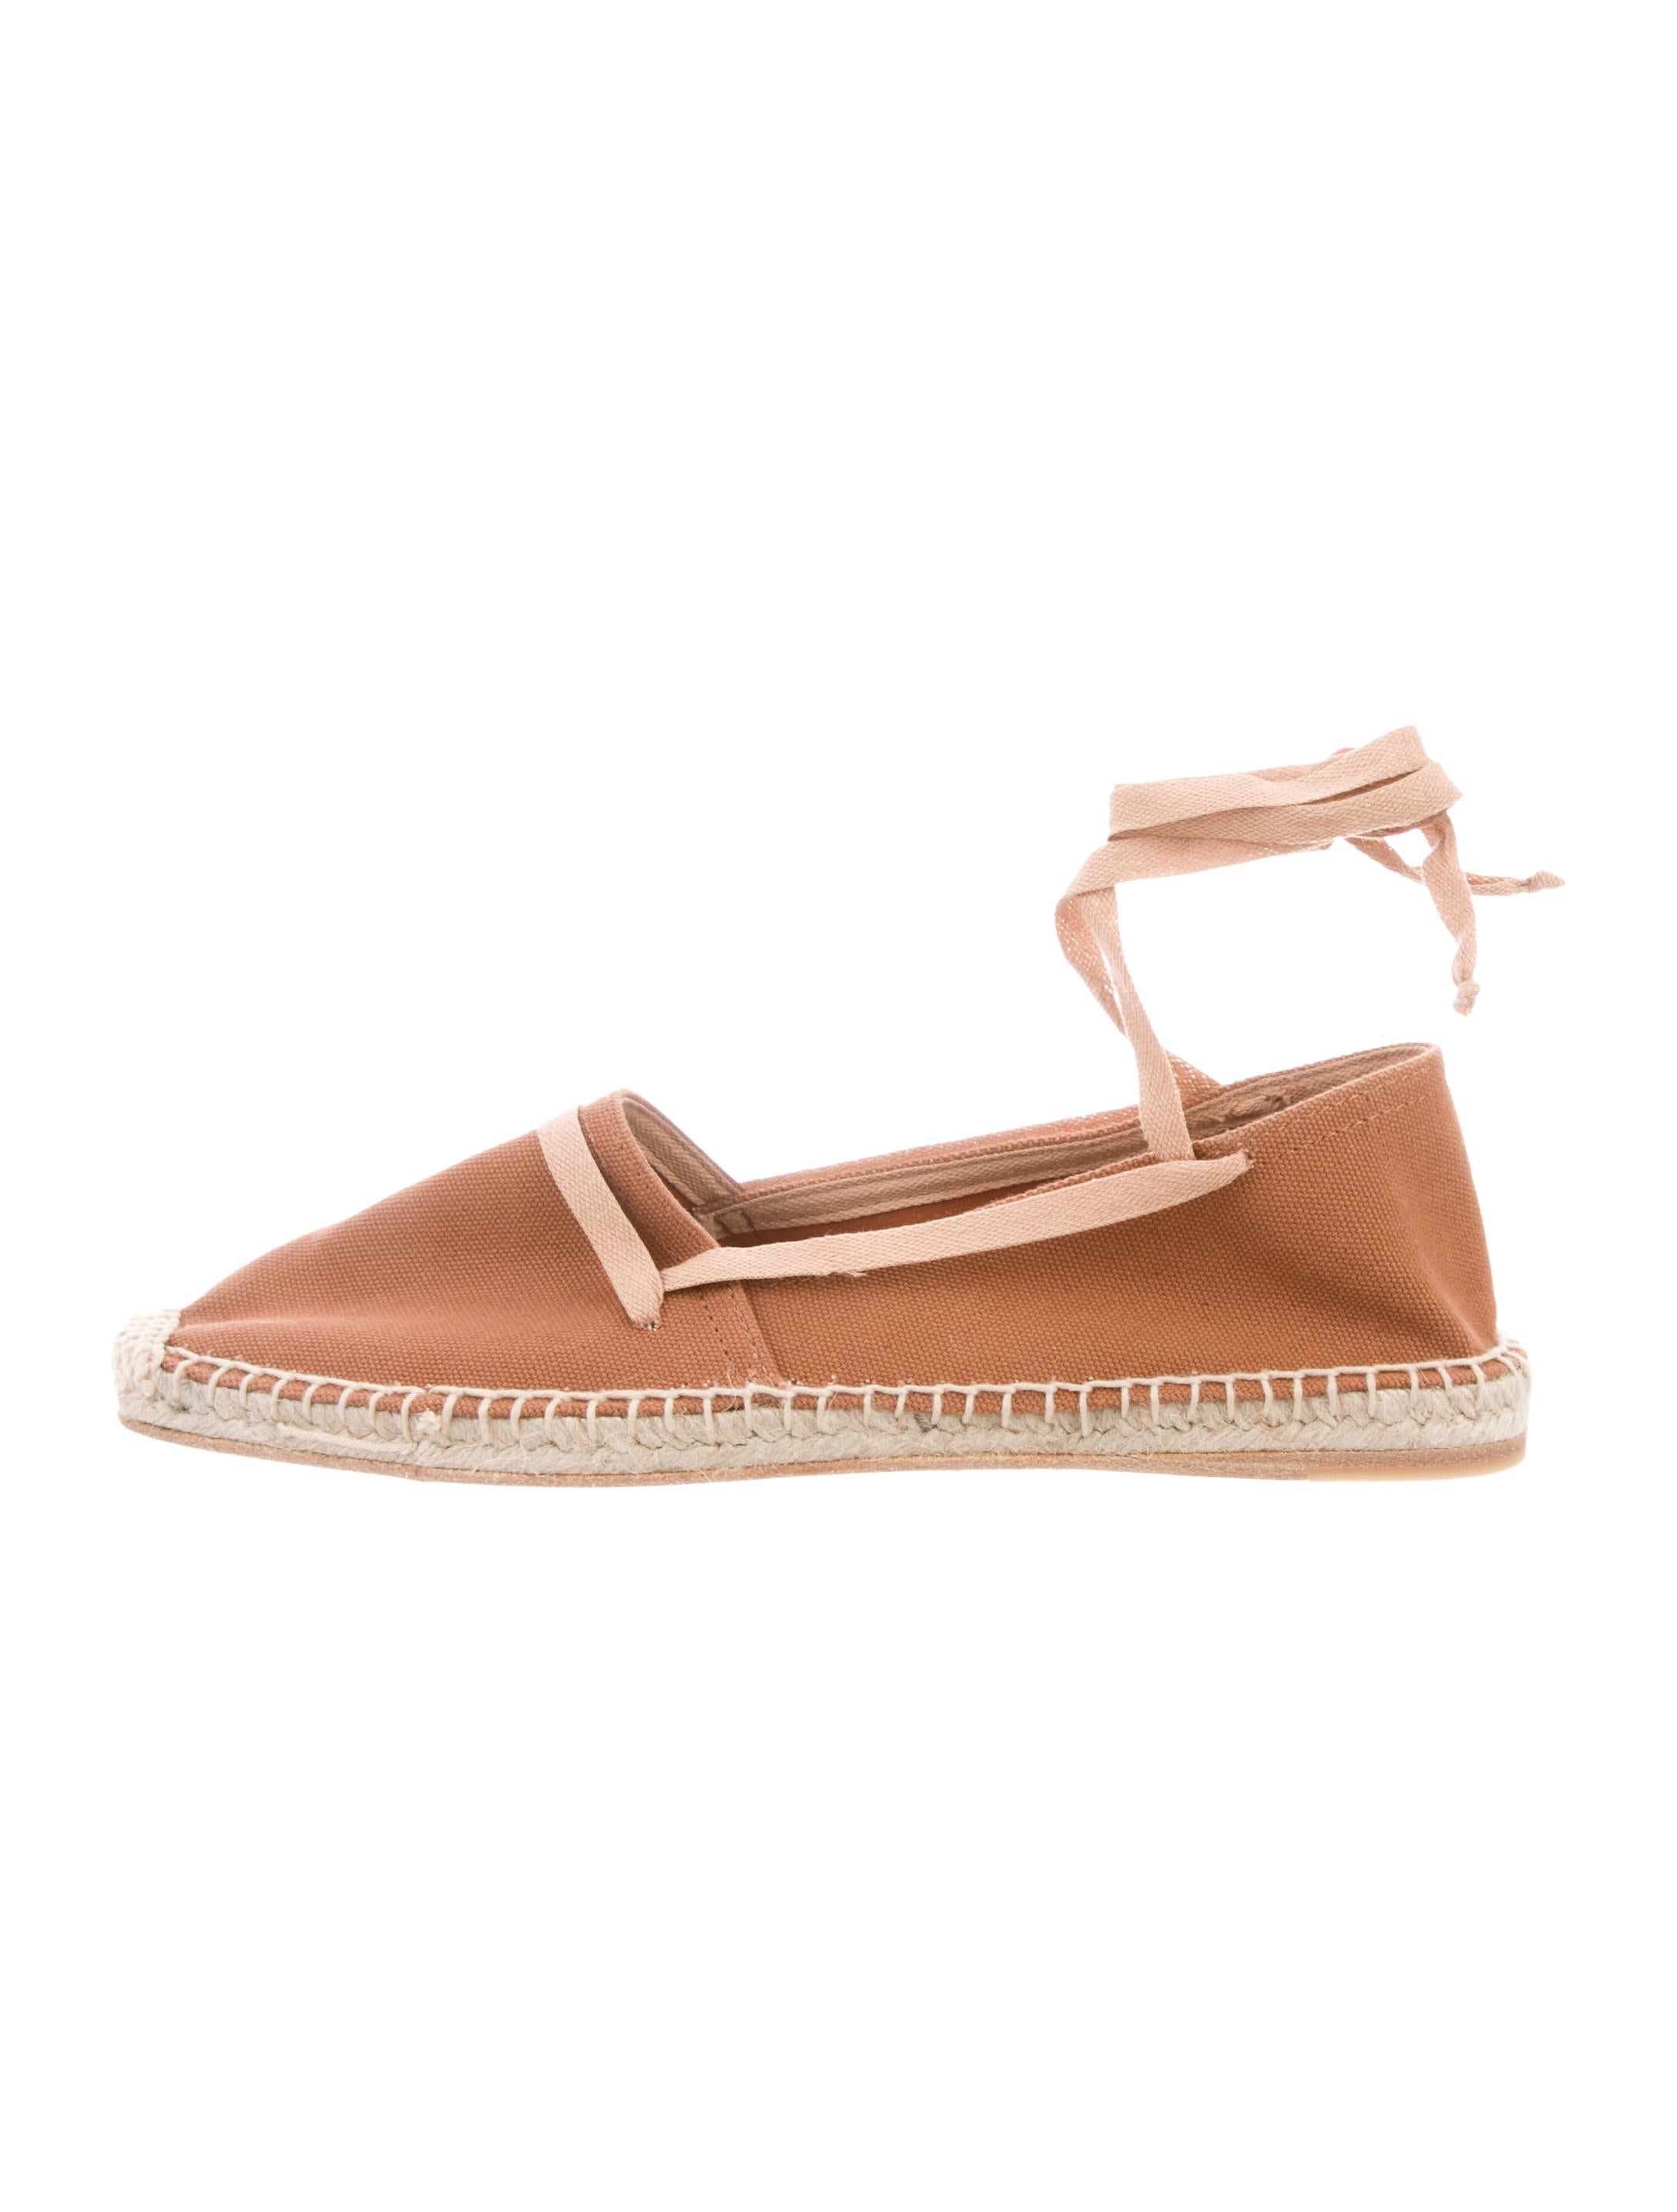 DÔEN Canvas Lace-Up Espadrilles free shipping looking for clearance authentic 100% guaranteed for sale cheap new discount 2015 new yJwu4cN